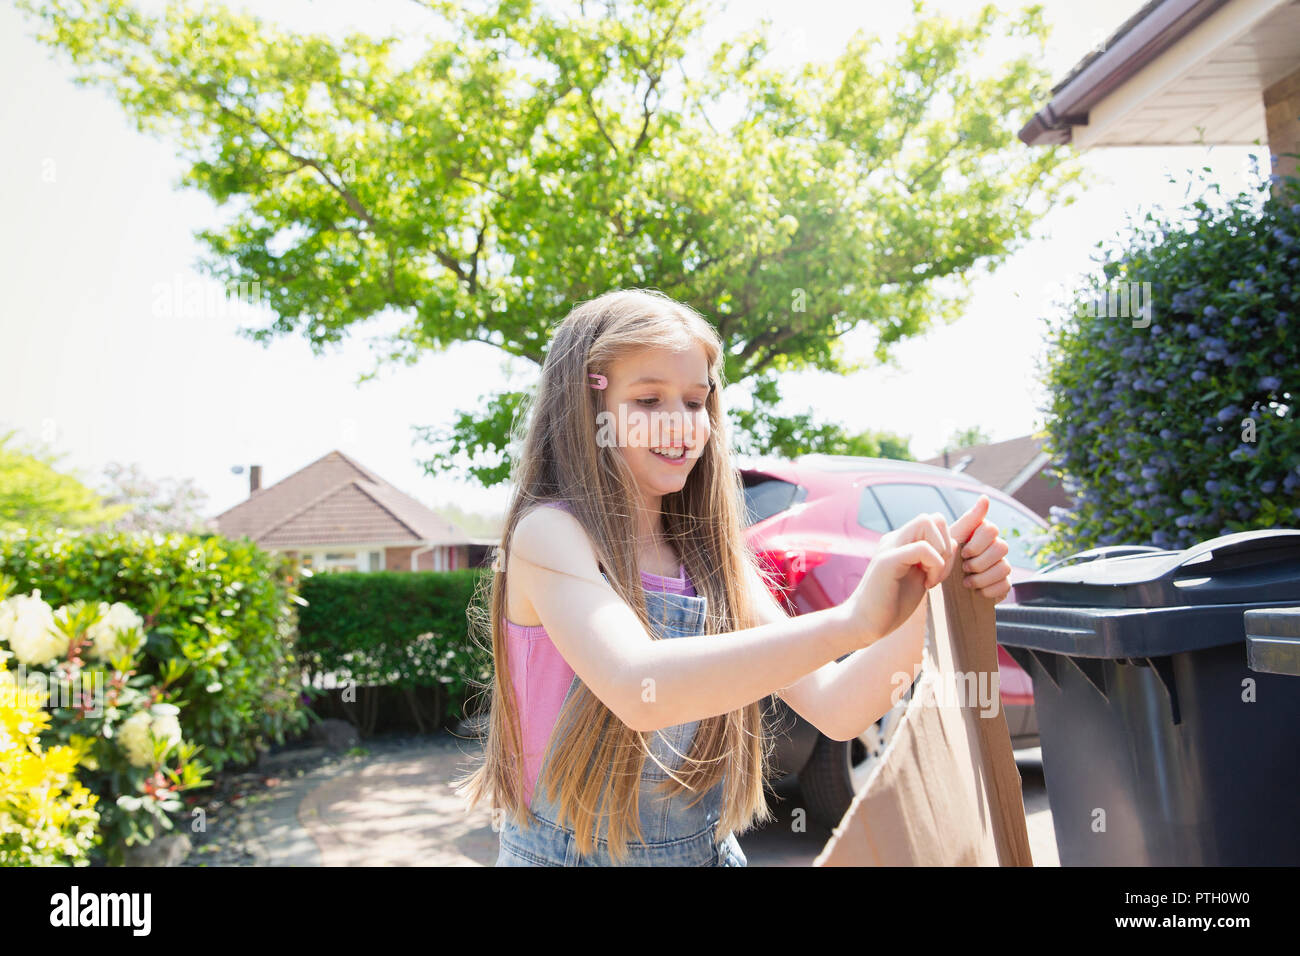 Girl recycling in sunny driveway - Stock Image